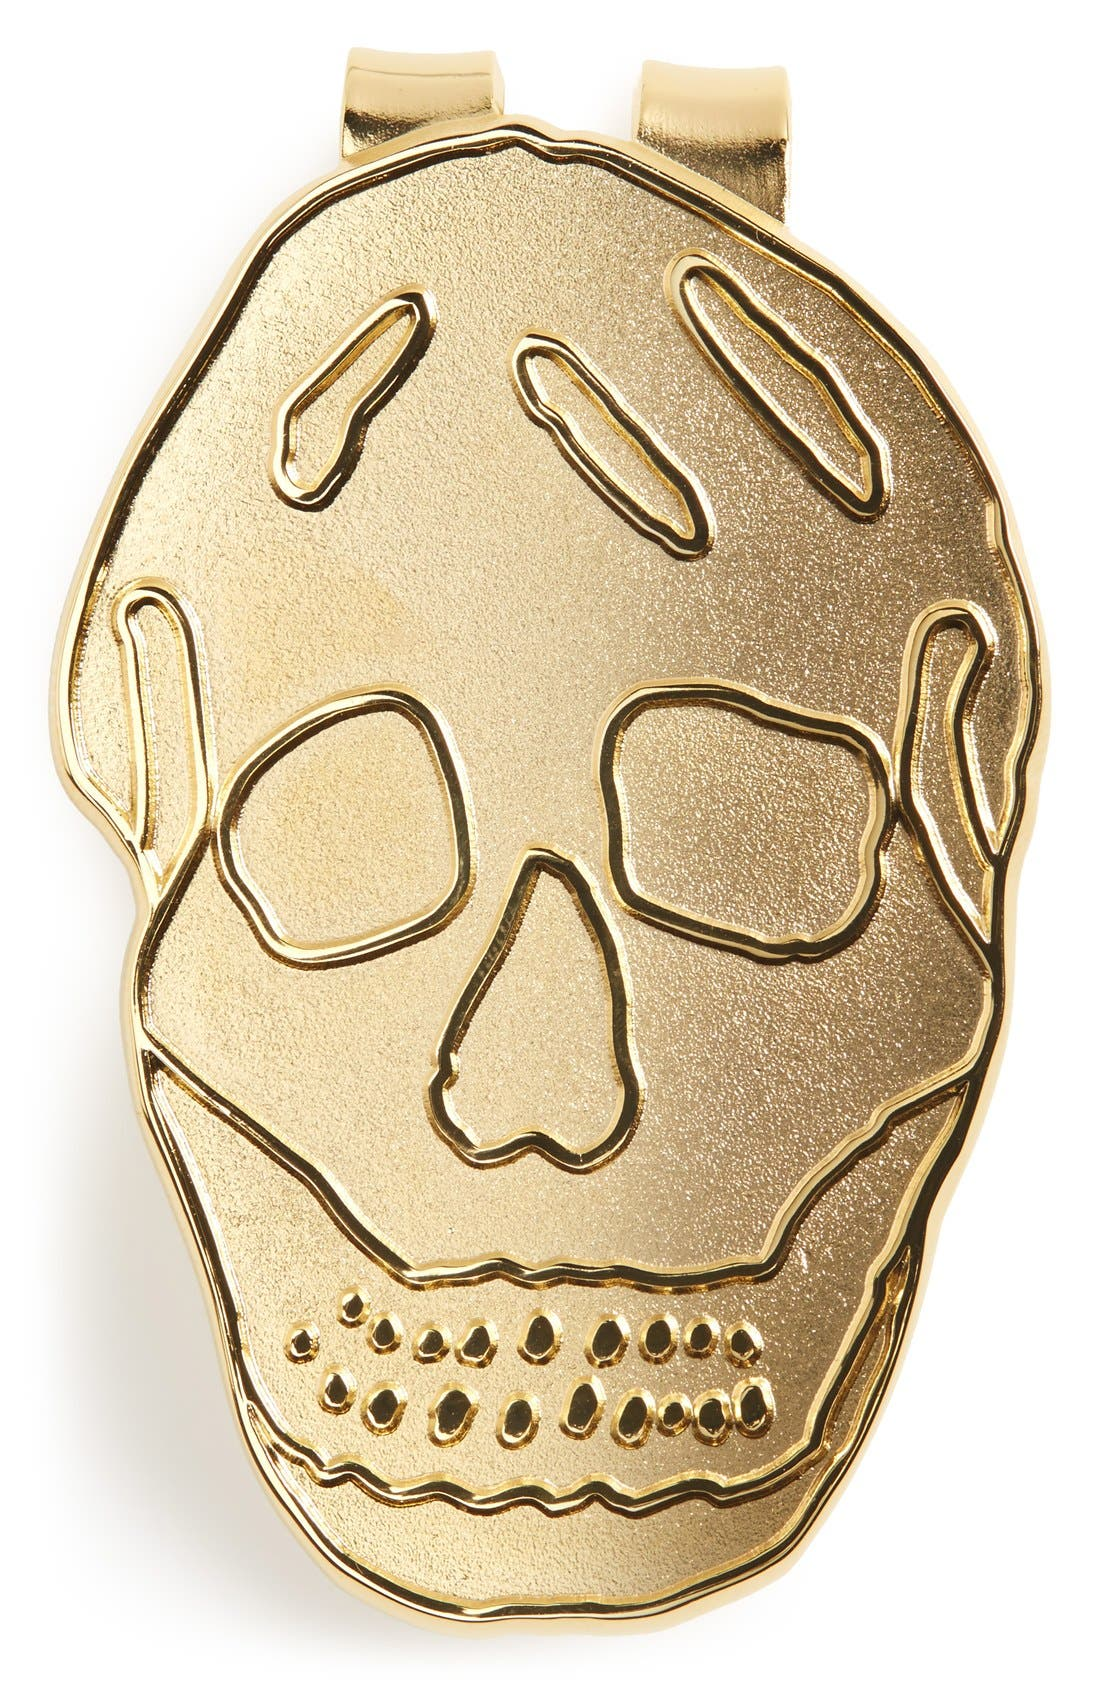 Alexander McQueen Golden Skull Money Clip